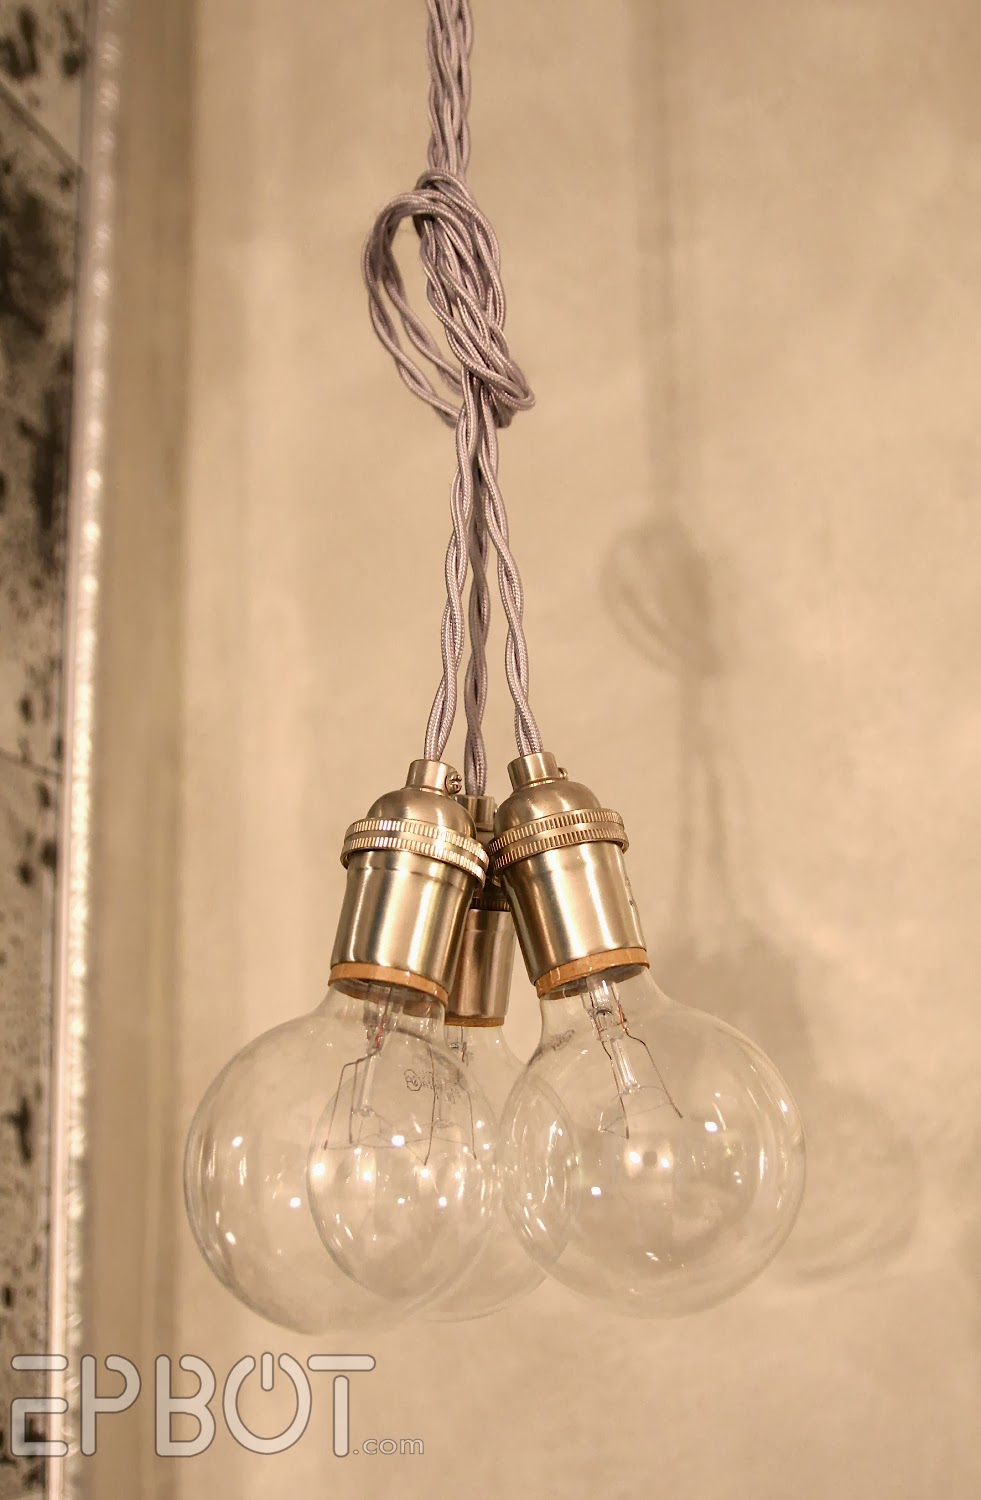 epbot wire your own pendant lighting cheap easy fun